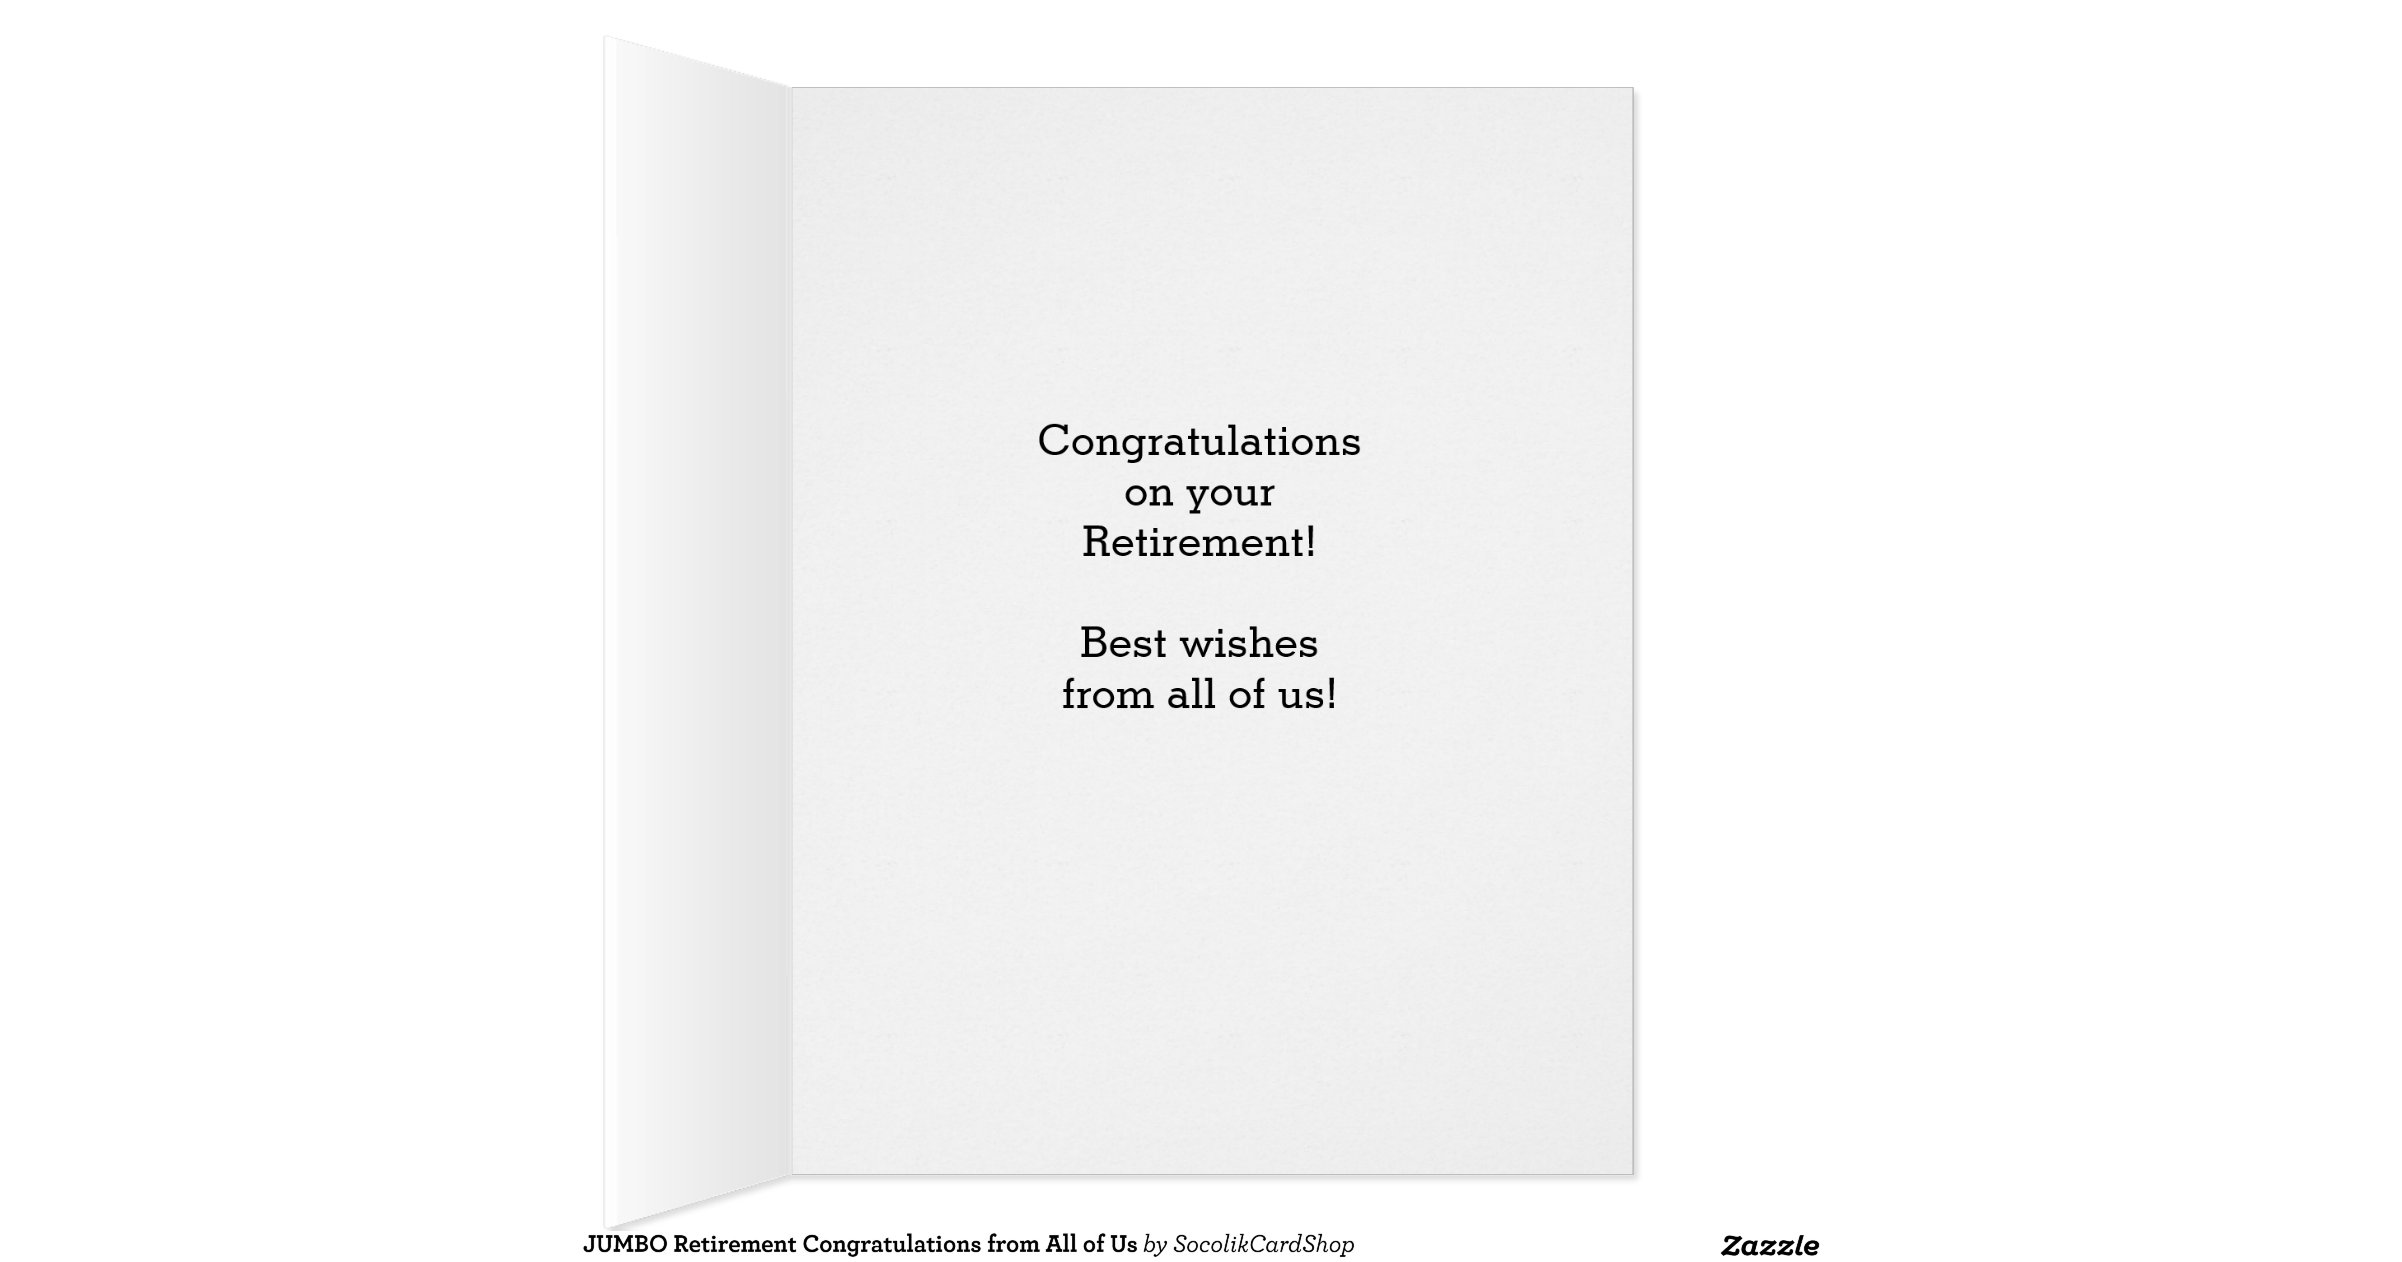 retirement_congratulations_from_all_of_us_jumbo_card